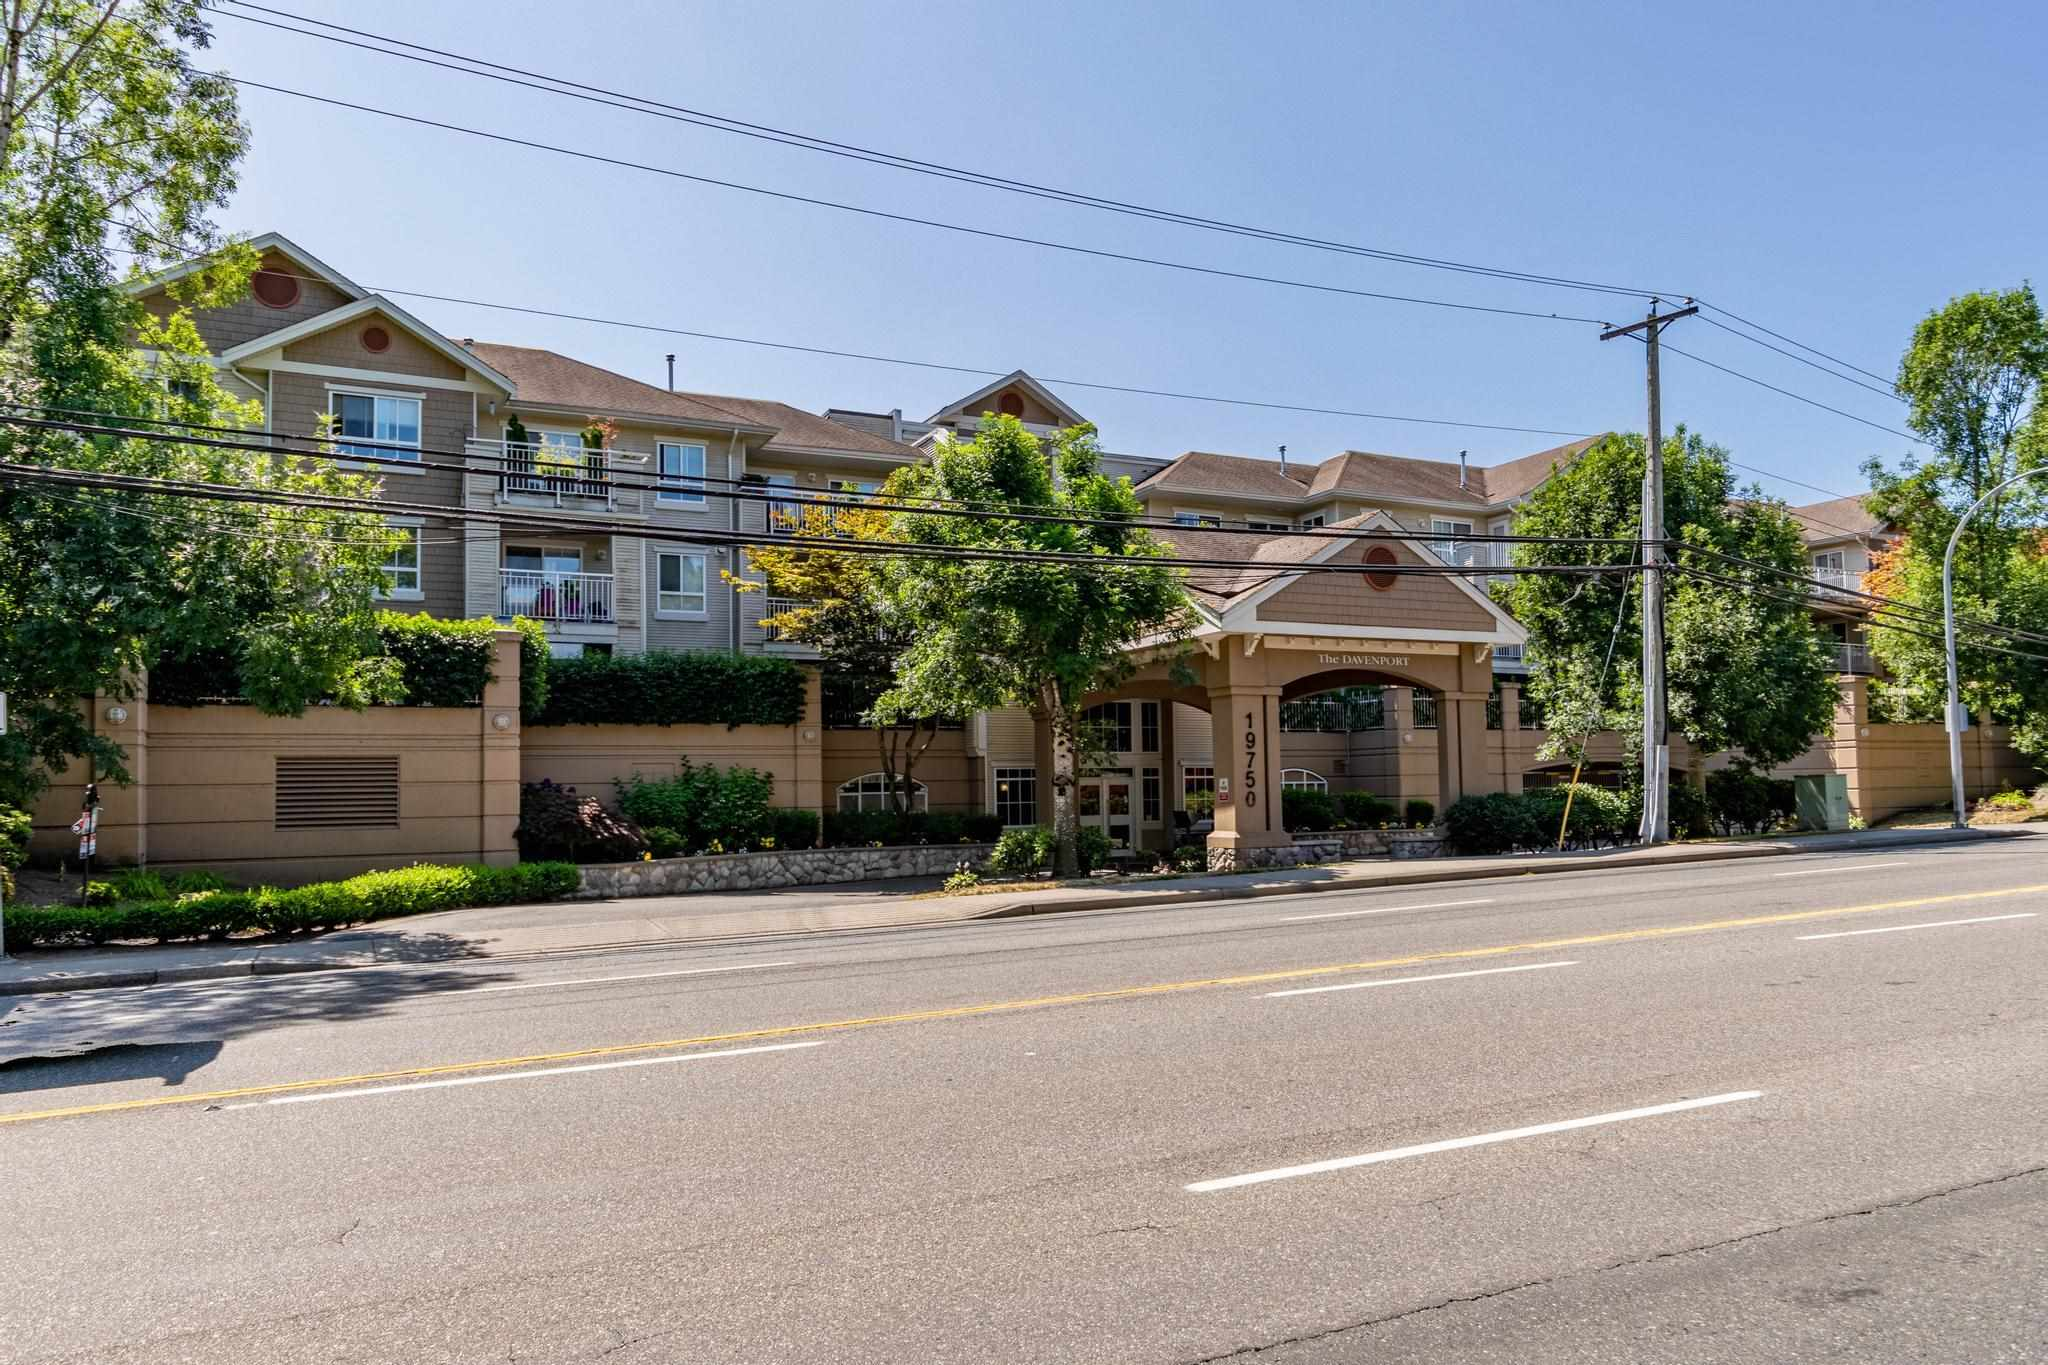 111 19750 64 AVENUE - Willoughby Heights Apartment/Condo for sale, 1 Bedroom (R2605026) - #1